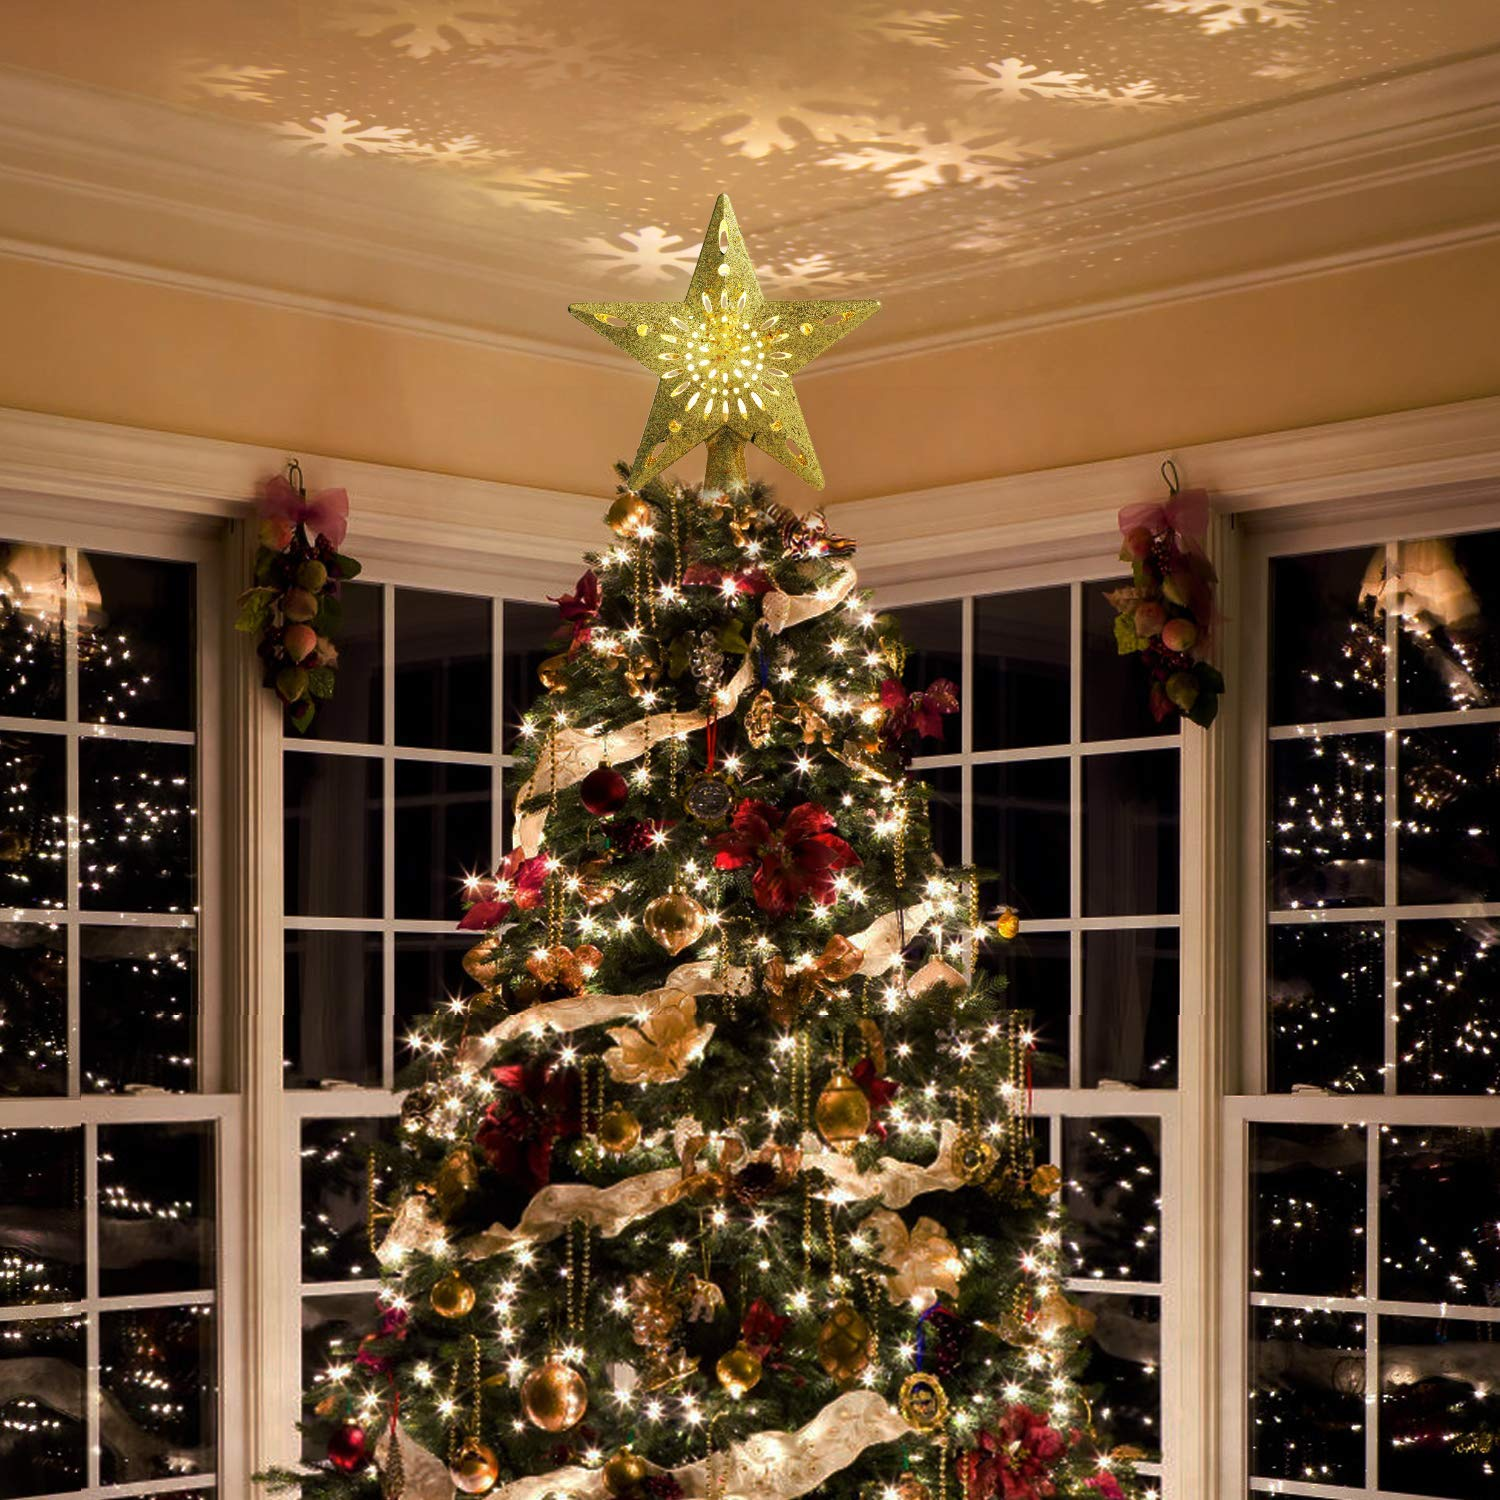 whc0815 Christmas Tree Topper Lighted Star Tree Toppers with LED Rotating Snowflake Projector Lights 3D Hollow Star Christmas Tree Topper LED Snowflake Projector Lights Decoration Gold